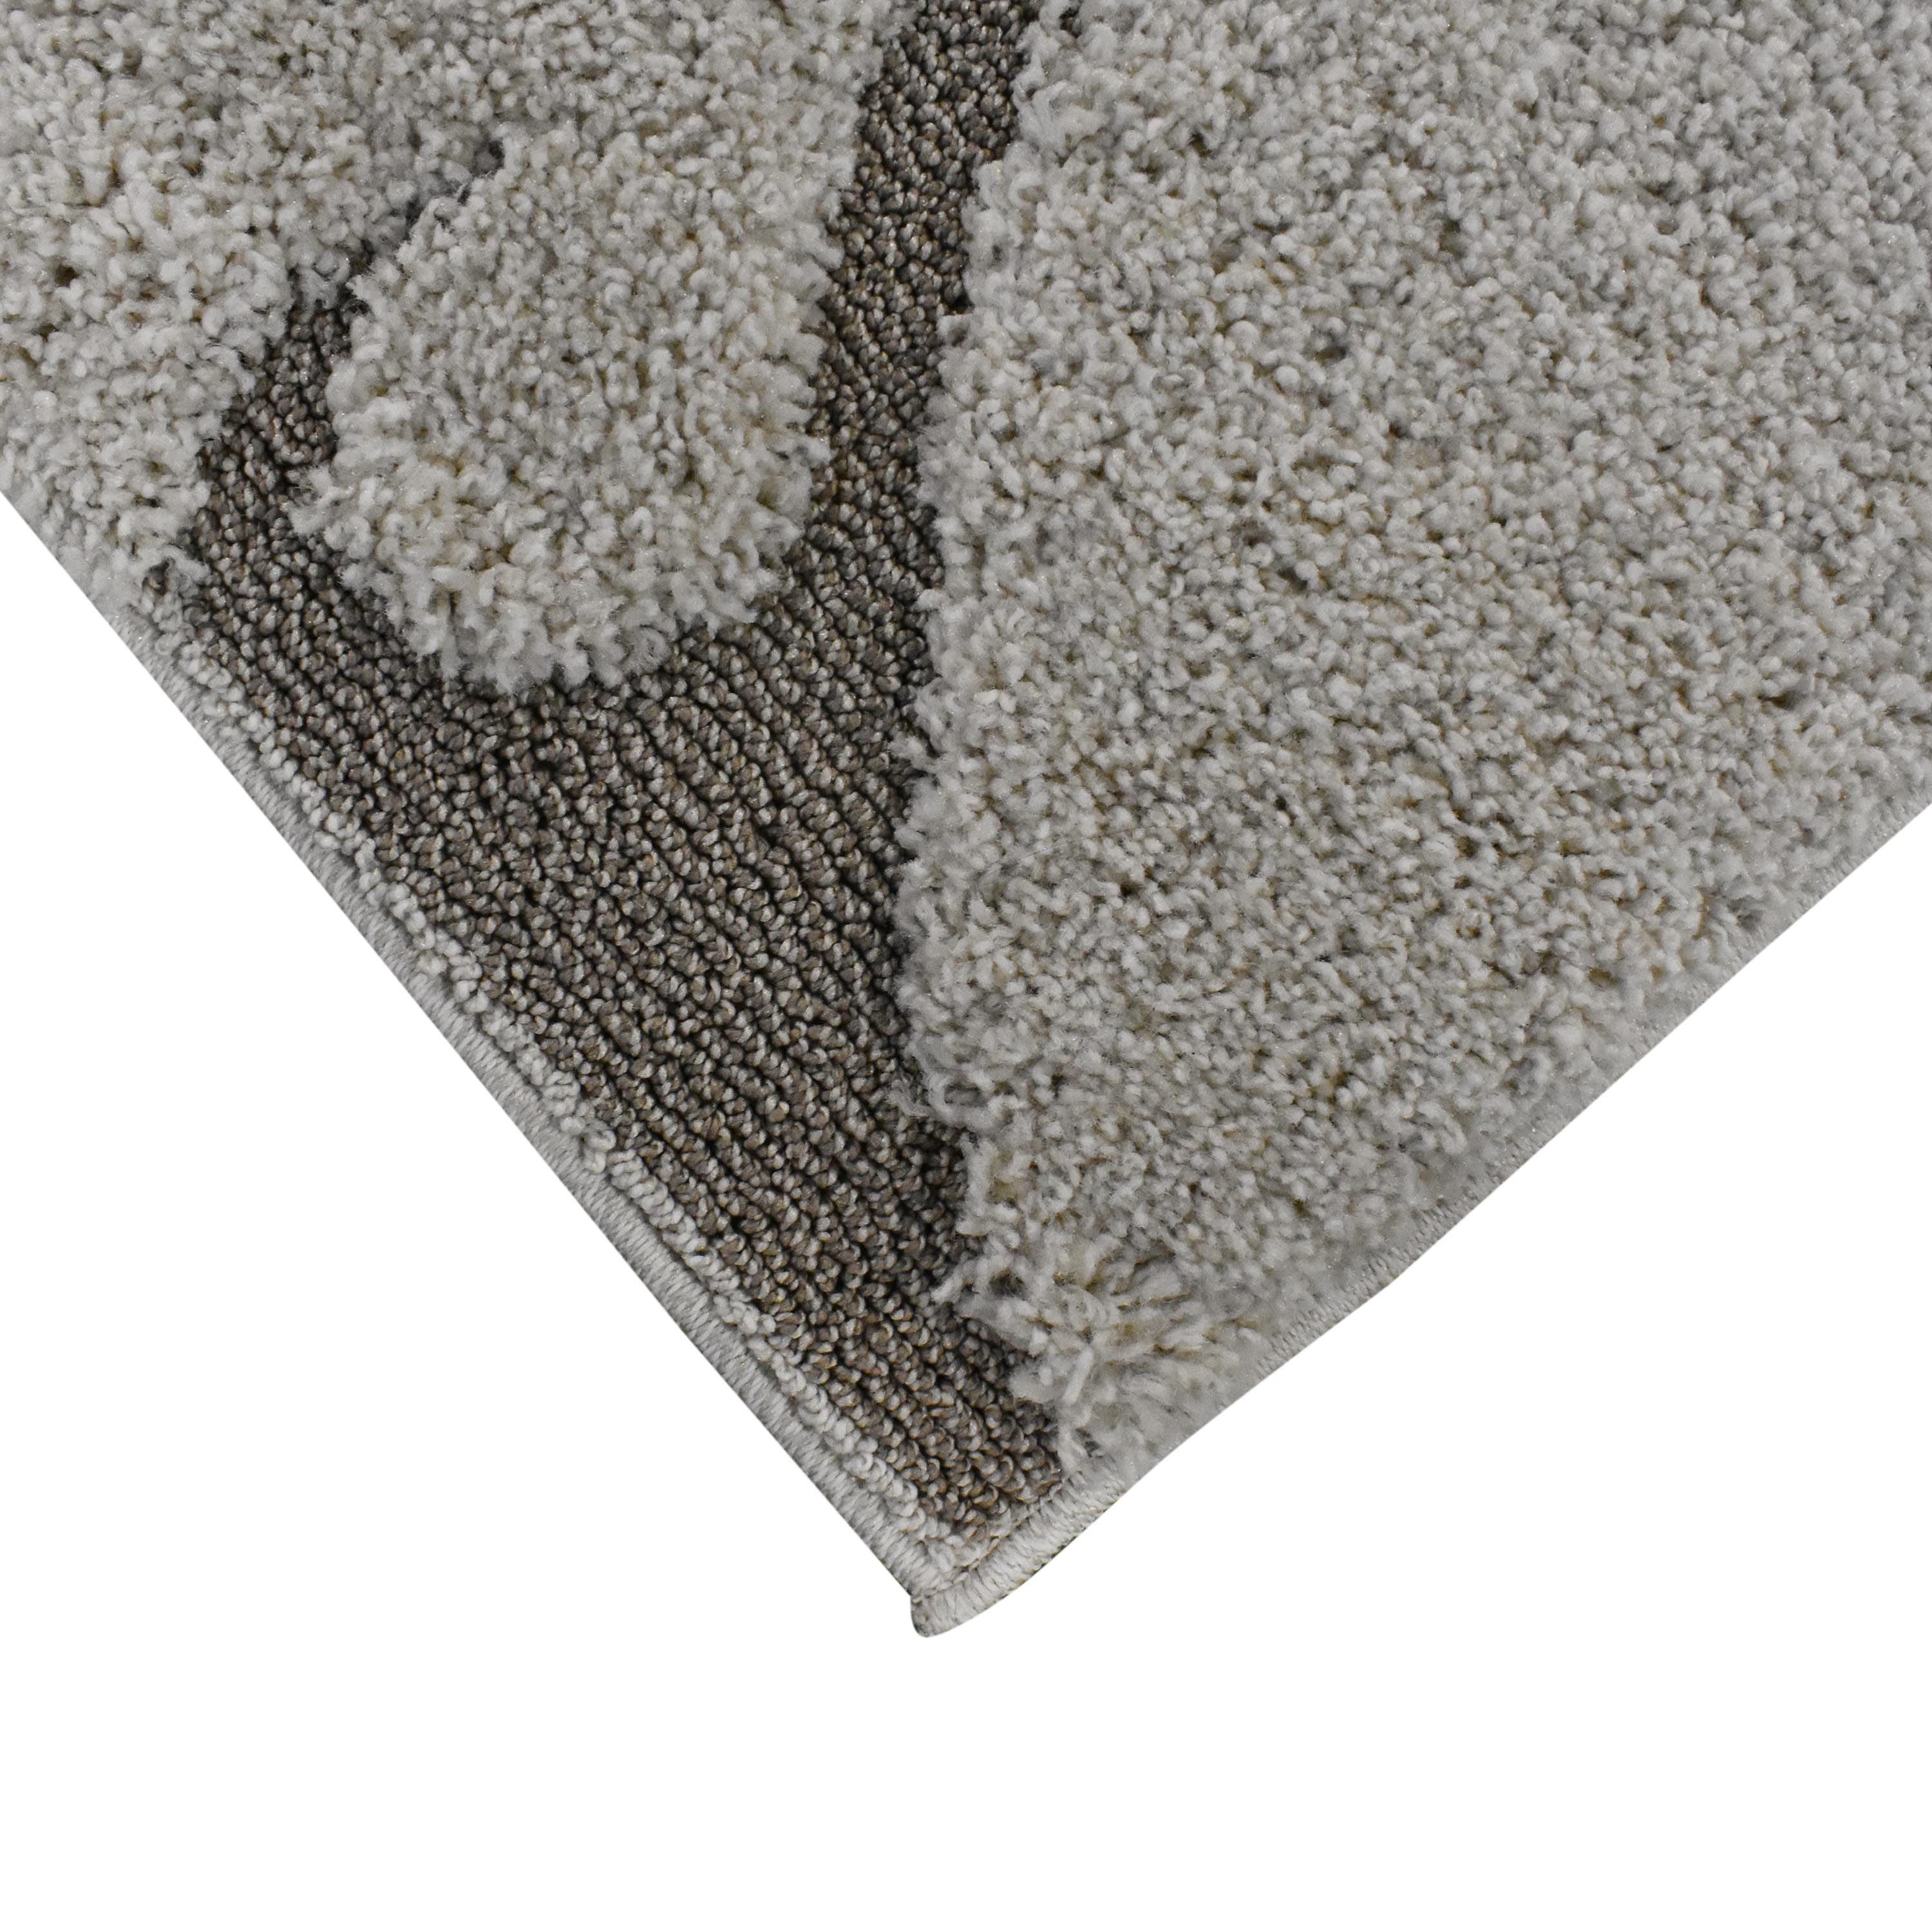 Canyon Furniture Canyon Furniture Patterned Area Rug discount